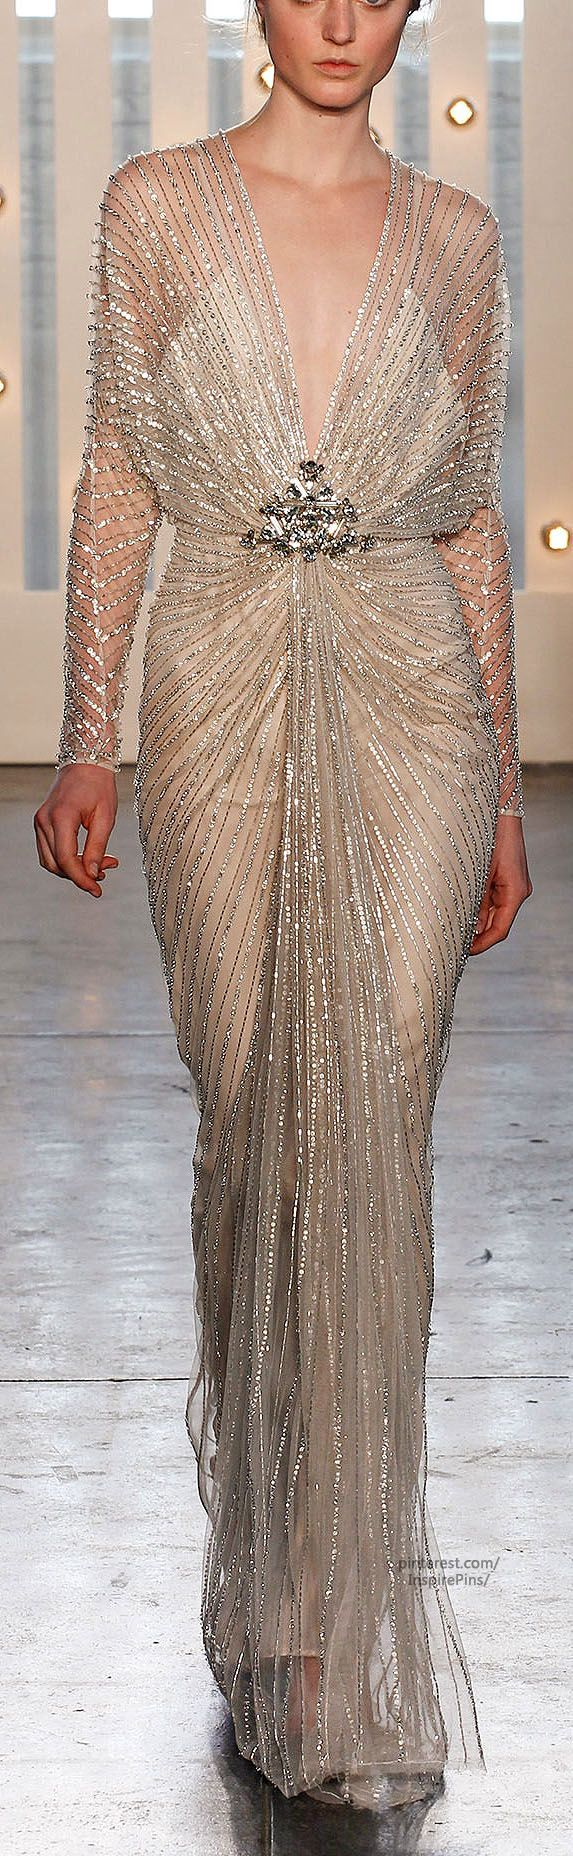 Fall 2014 Ready-to-Wear Jenny Packham  #PurelyInspiration #NYFW